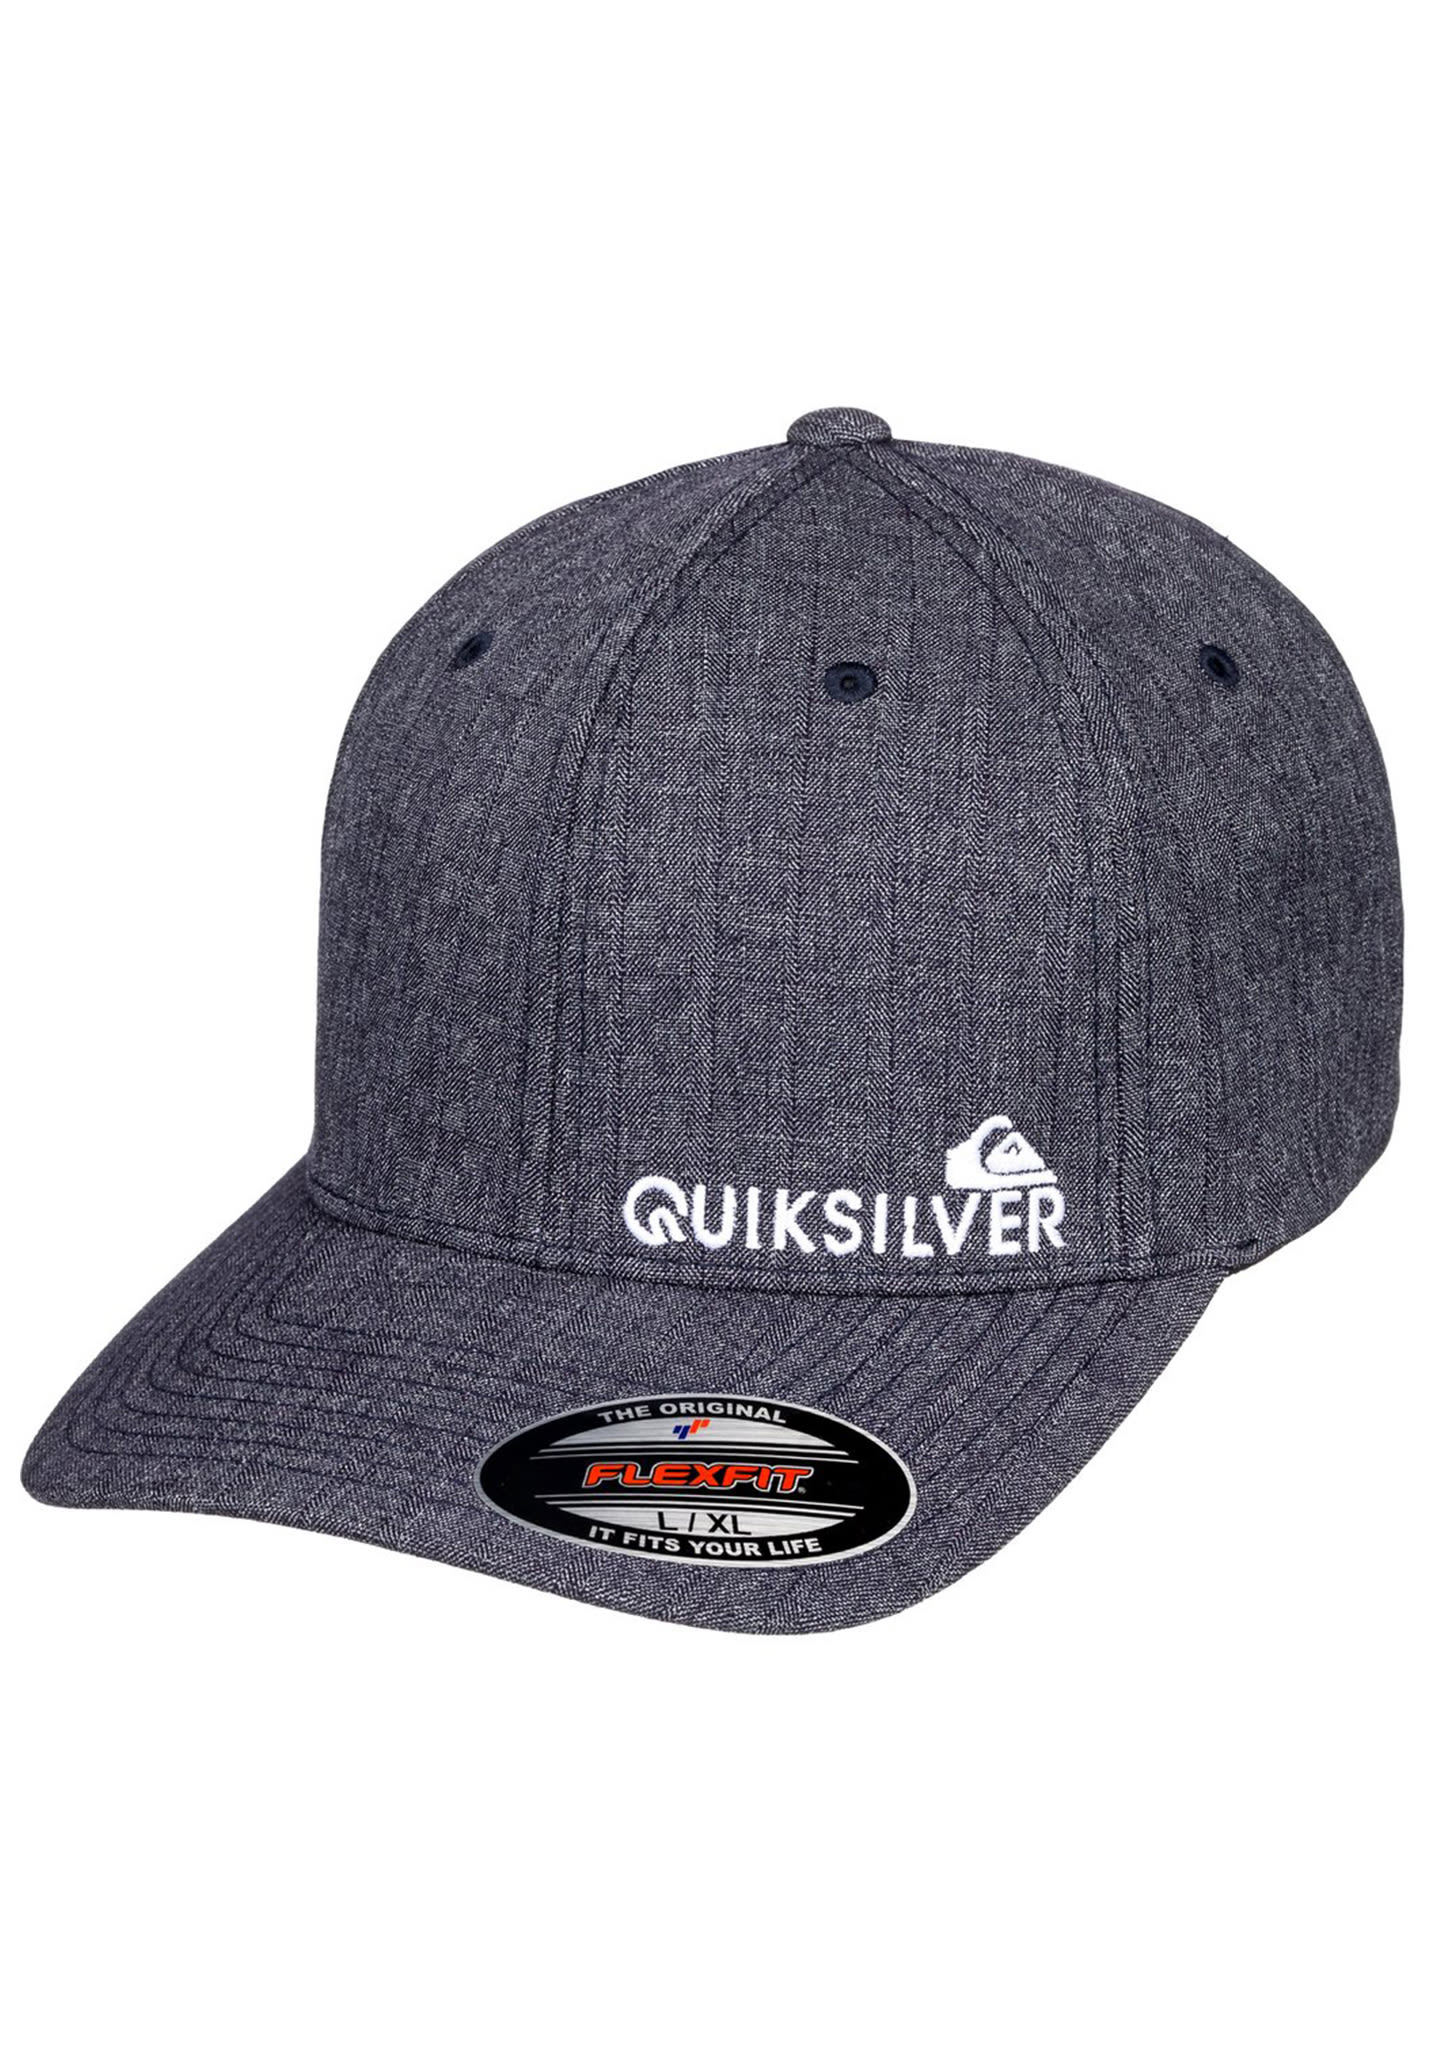 check out 04a61 0ea1a Quiksilver Sidestay - Flexfit Cap for Men - Blue - Planet Sports